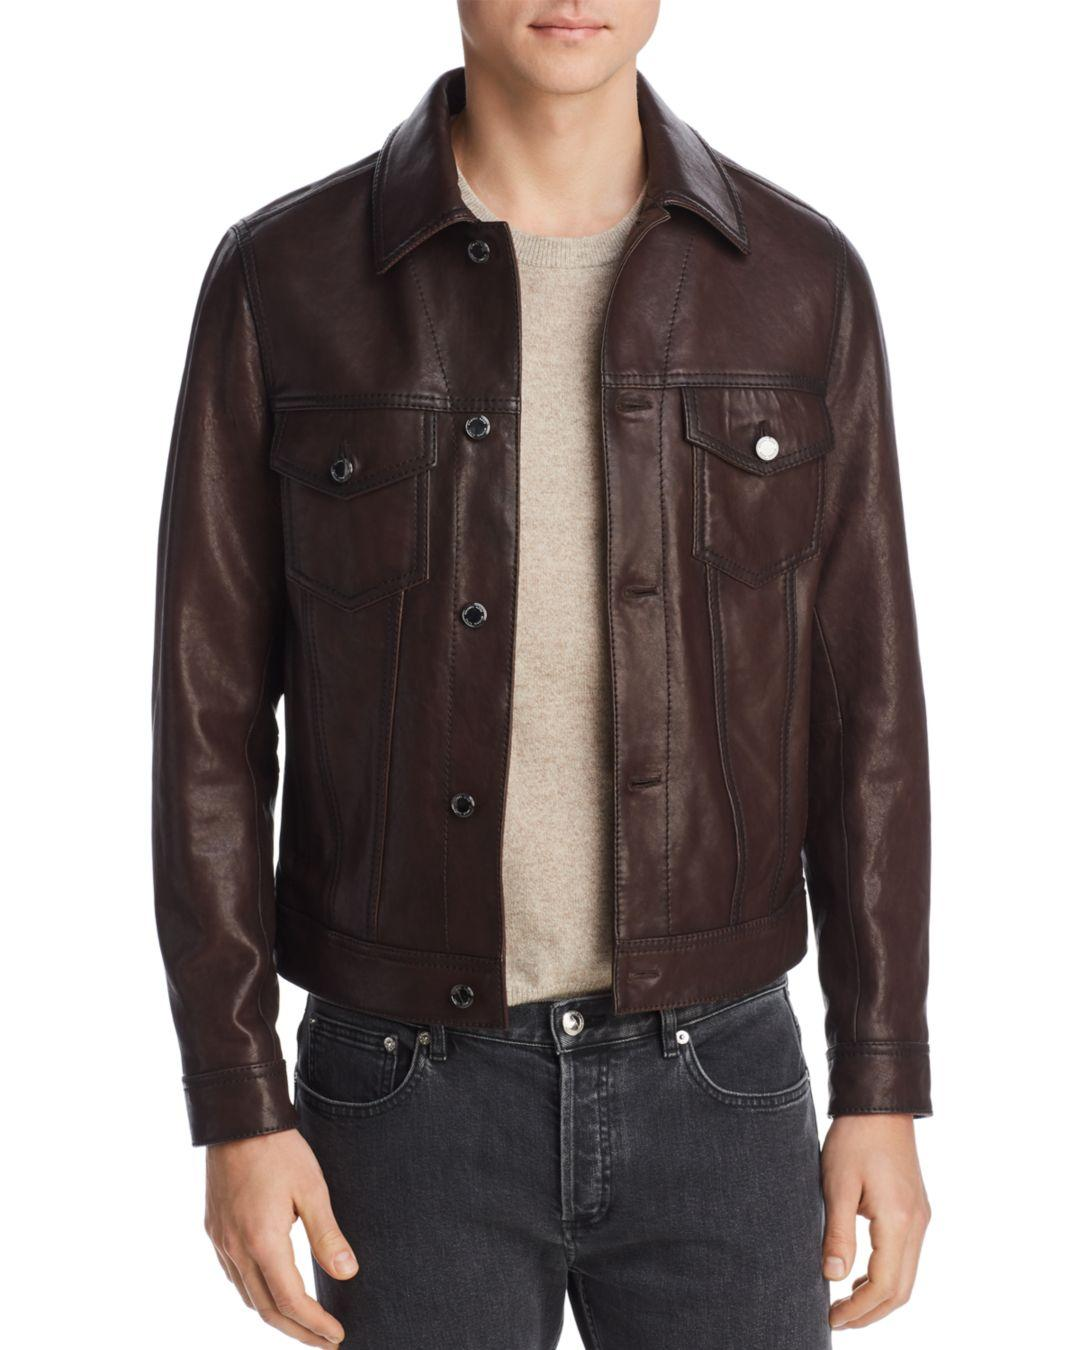 917678444f70c Lyst - Michael Kors Burnished Leather Jacket in Brown for Men